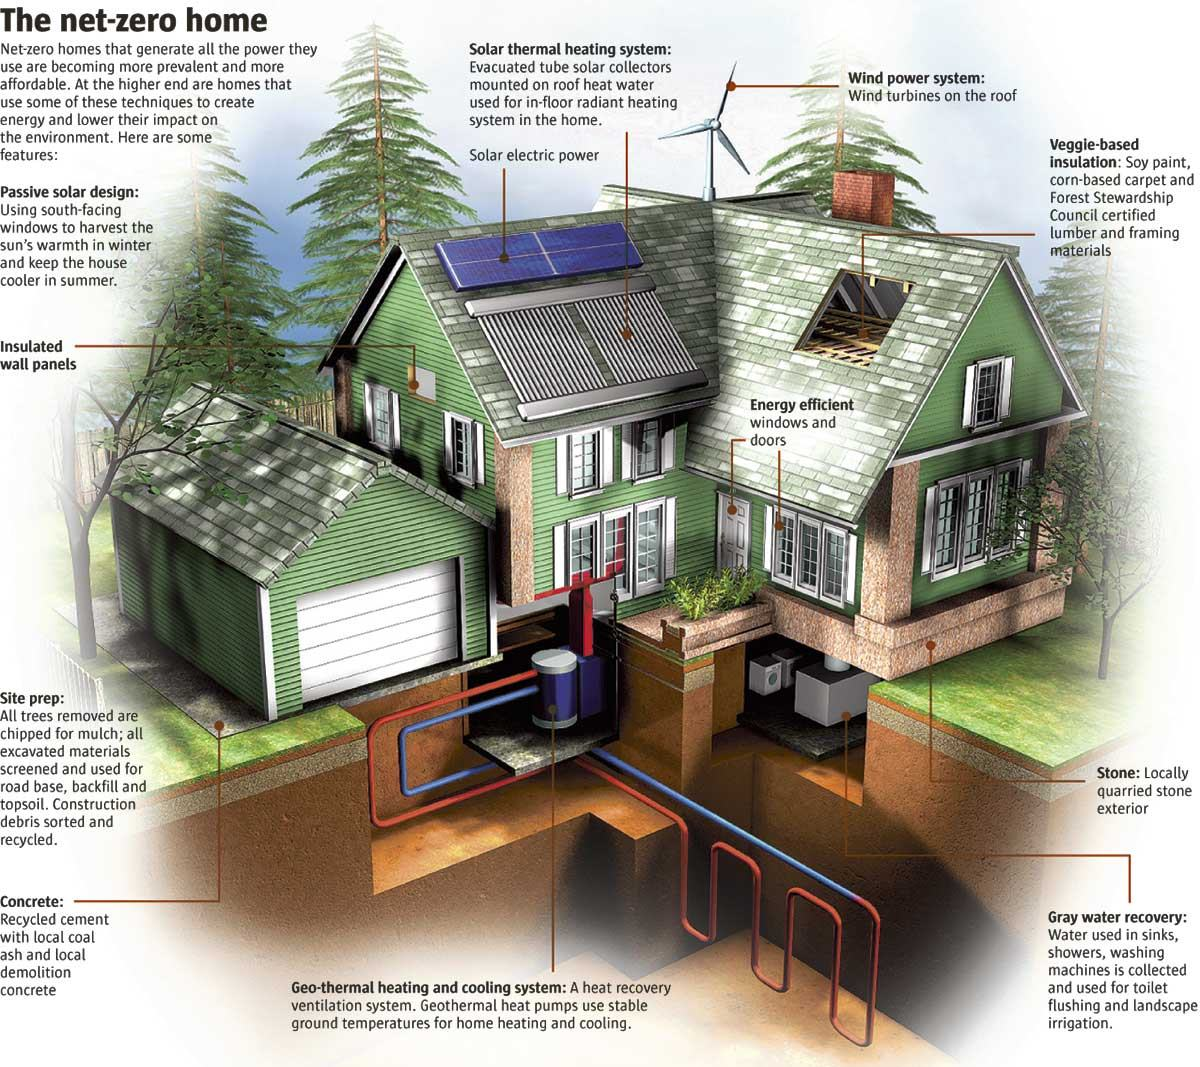 net-zero-green-home-diagram.jpg